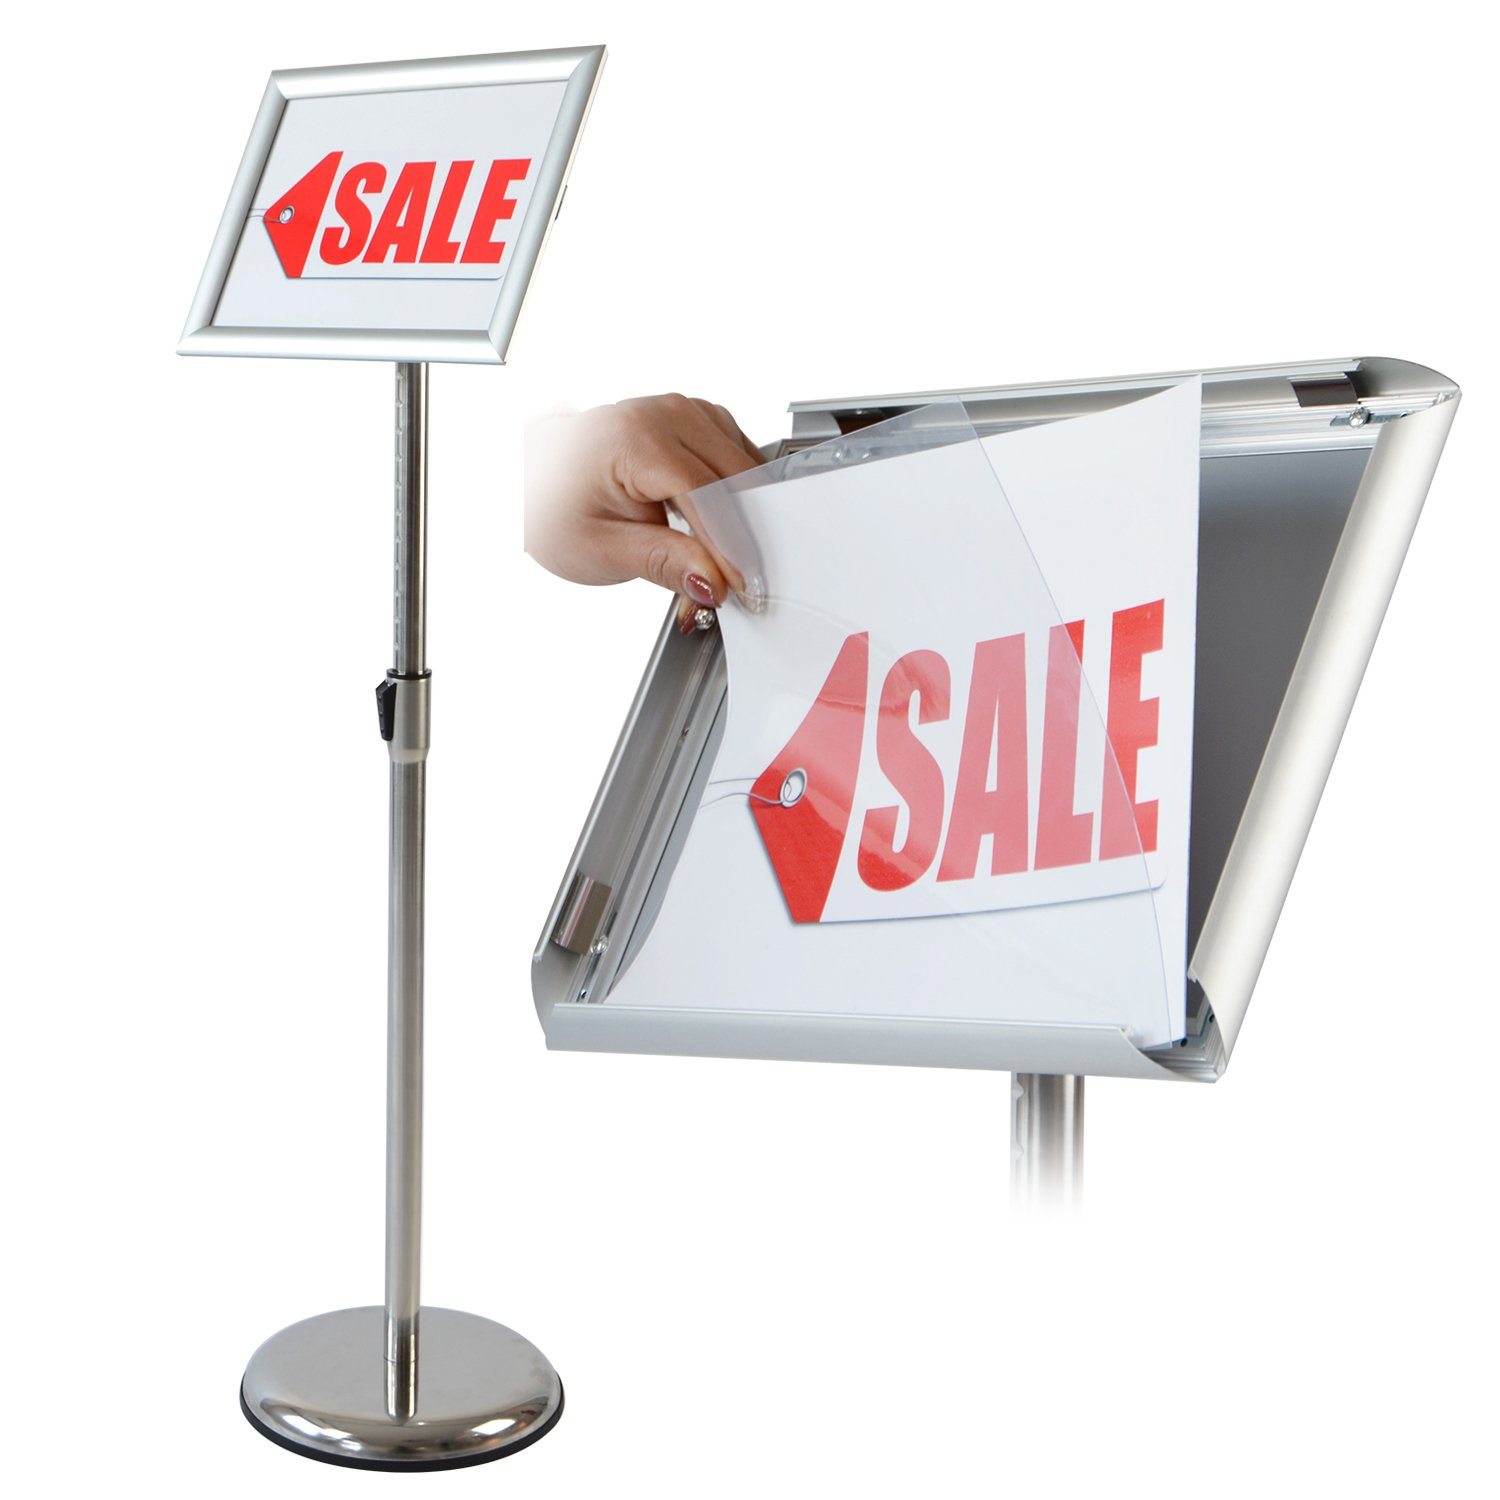 T-Sign Adjustable Pedestal Poster Stand Aluminum Snap Open Frame For 8.5 x 11 Inches Graphics, Both Vertical and Horizontal View Sign Displayed – Color Silver, Round Base